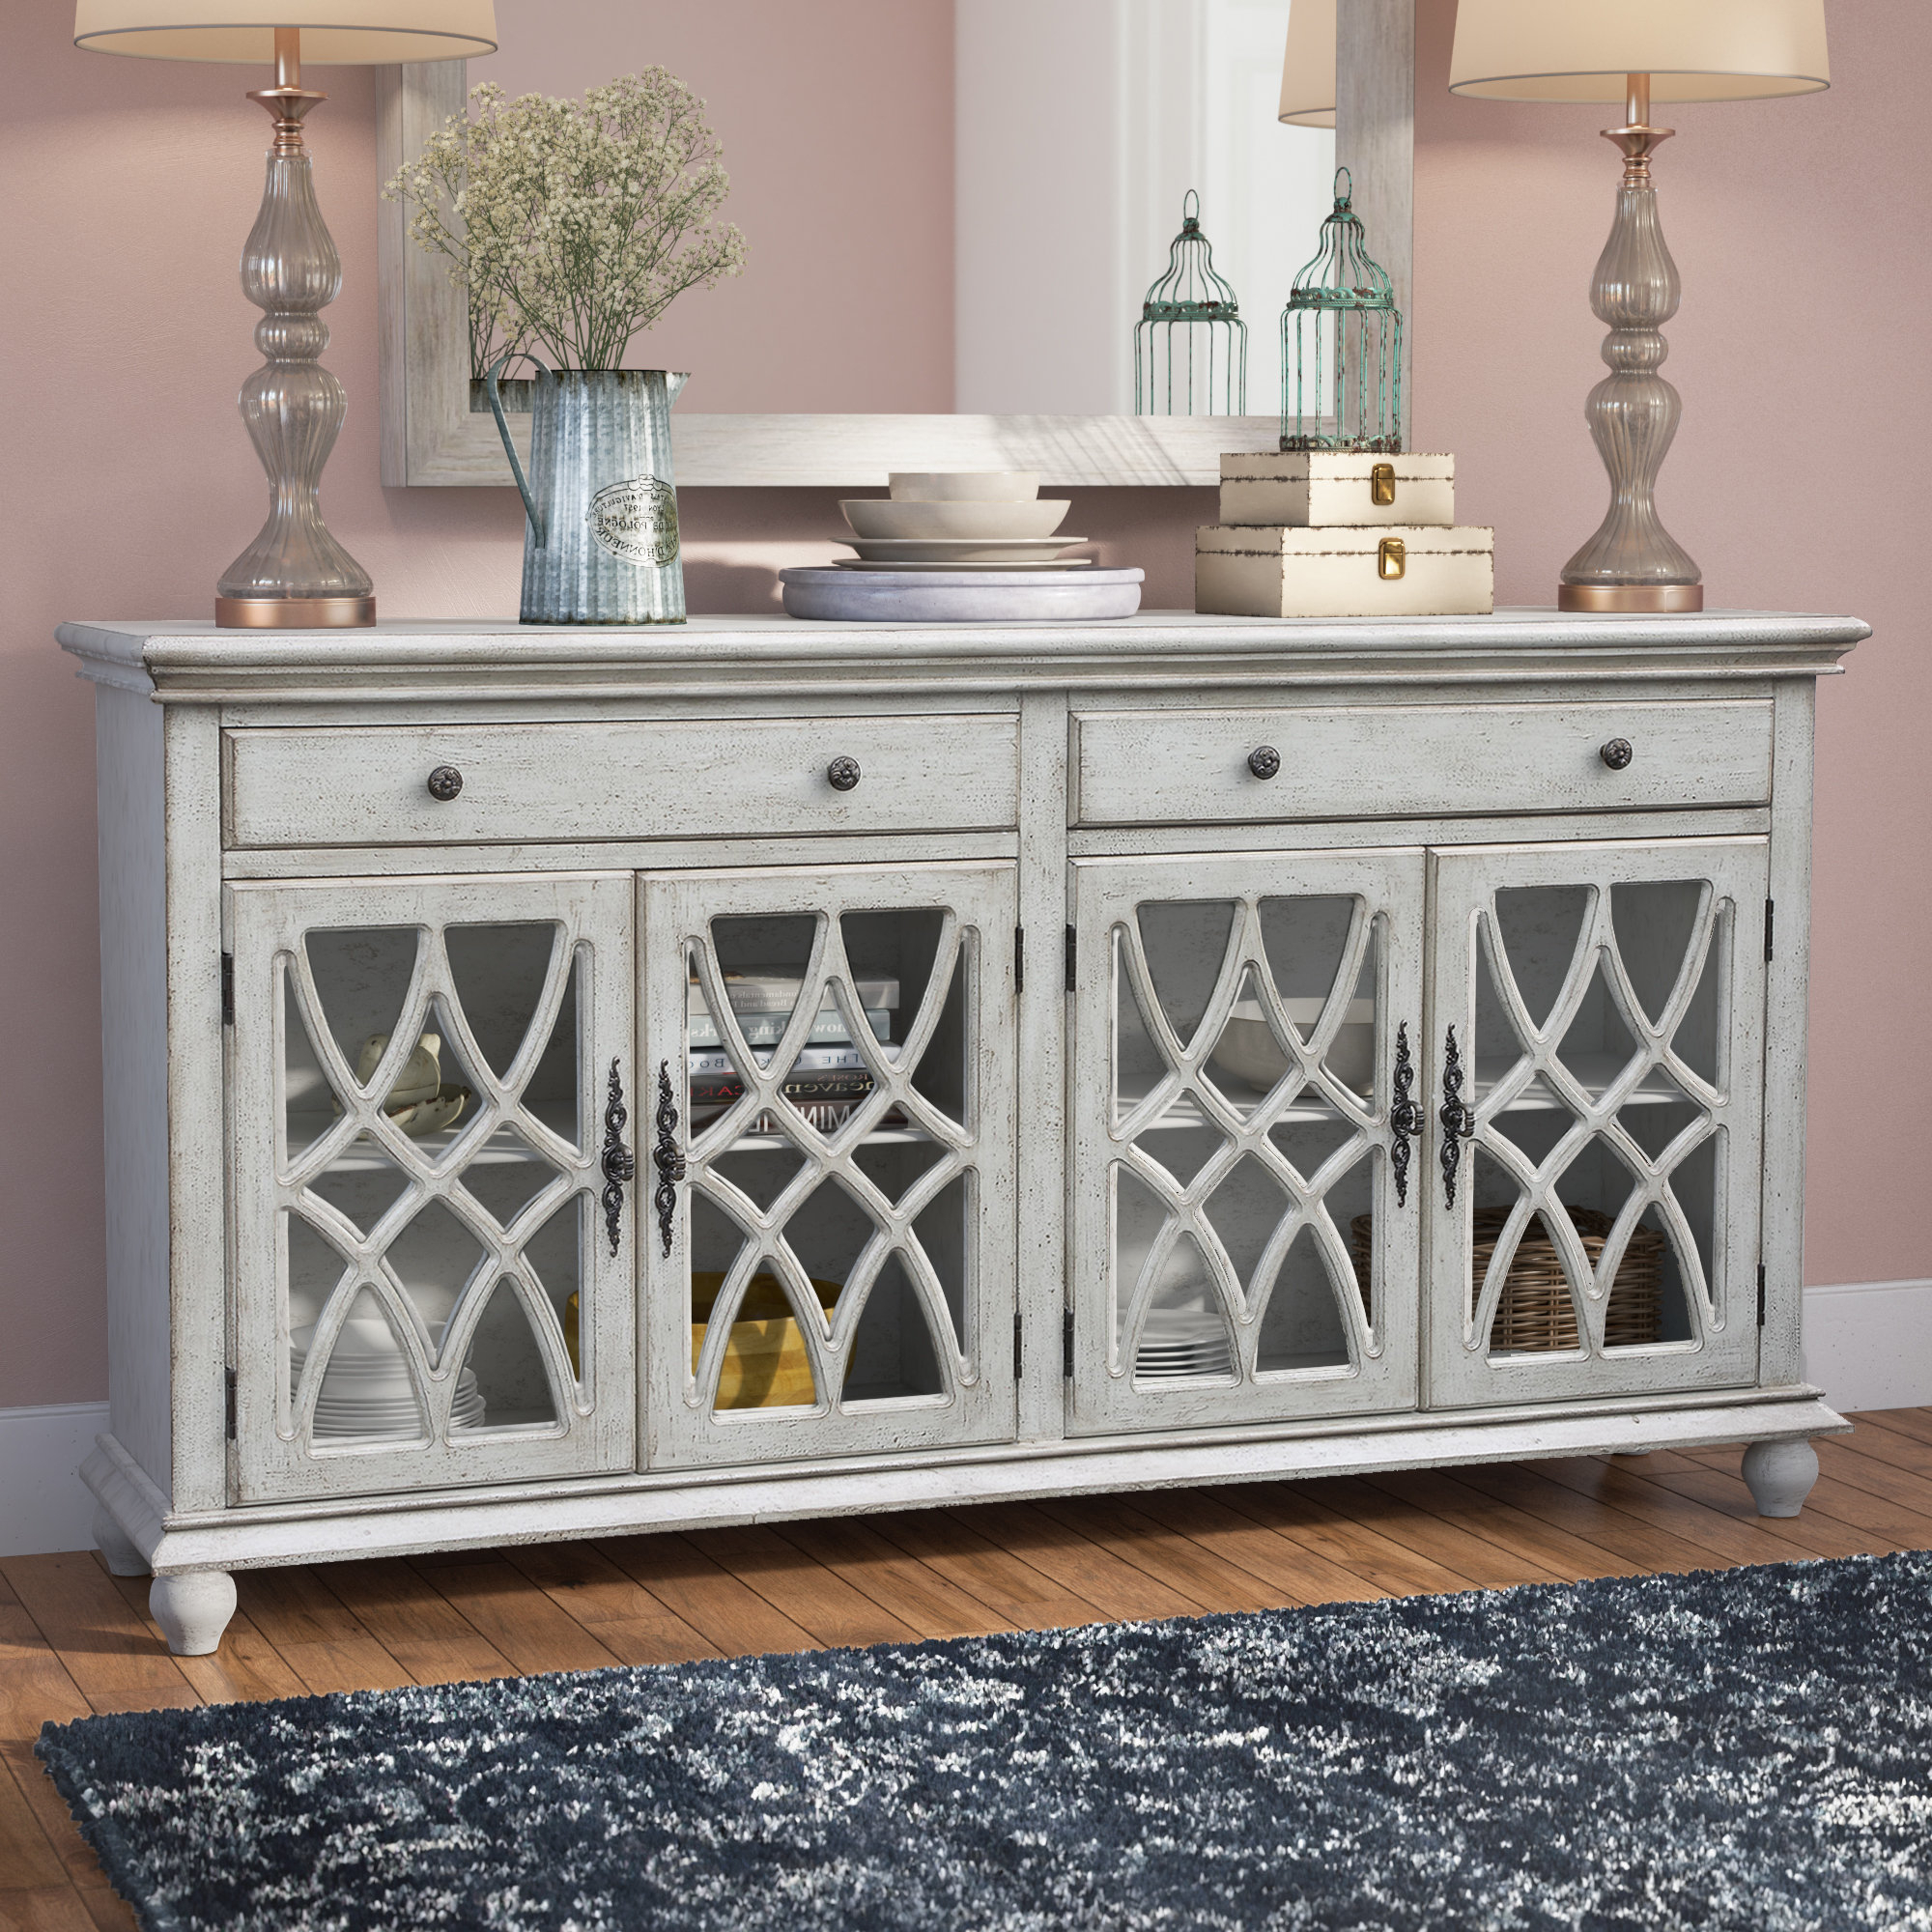 Widely Used Raquette Sideboard Regarding Raquette Sideboards (Gallery 2 of 20)